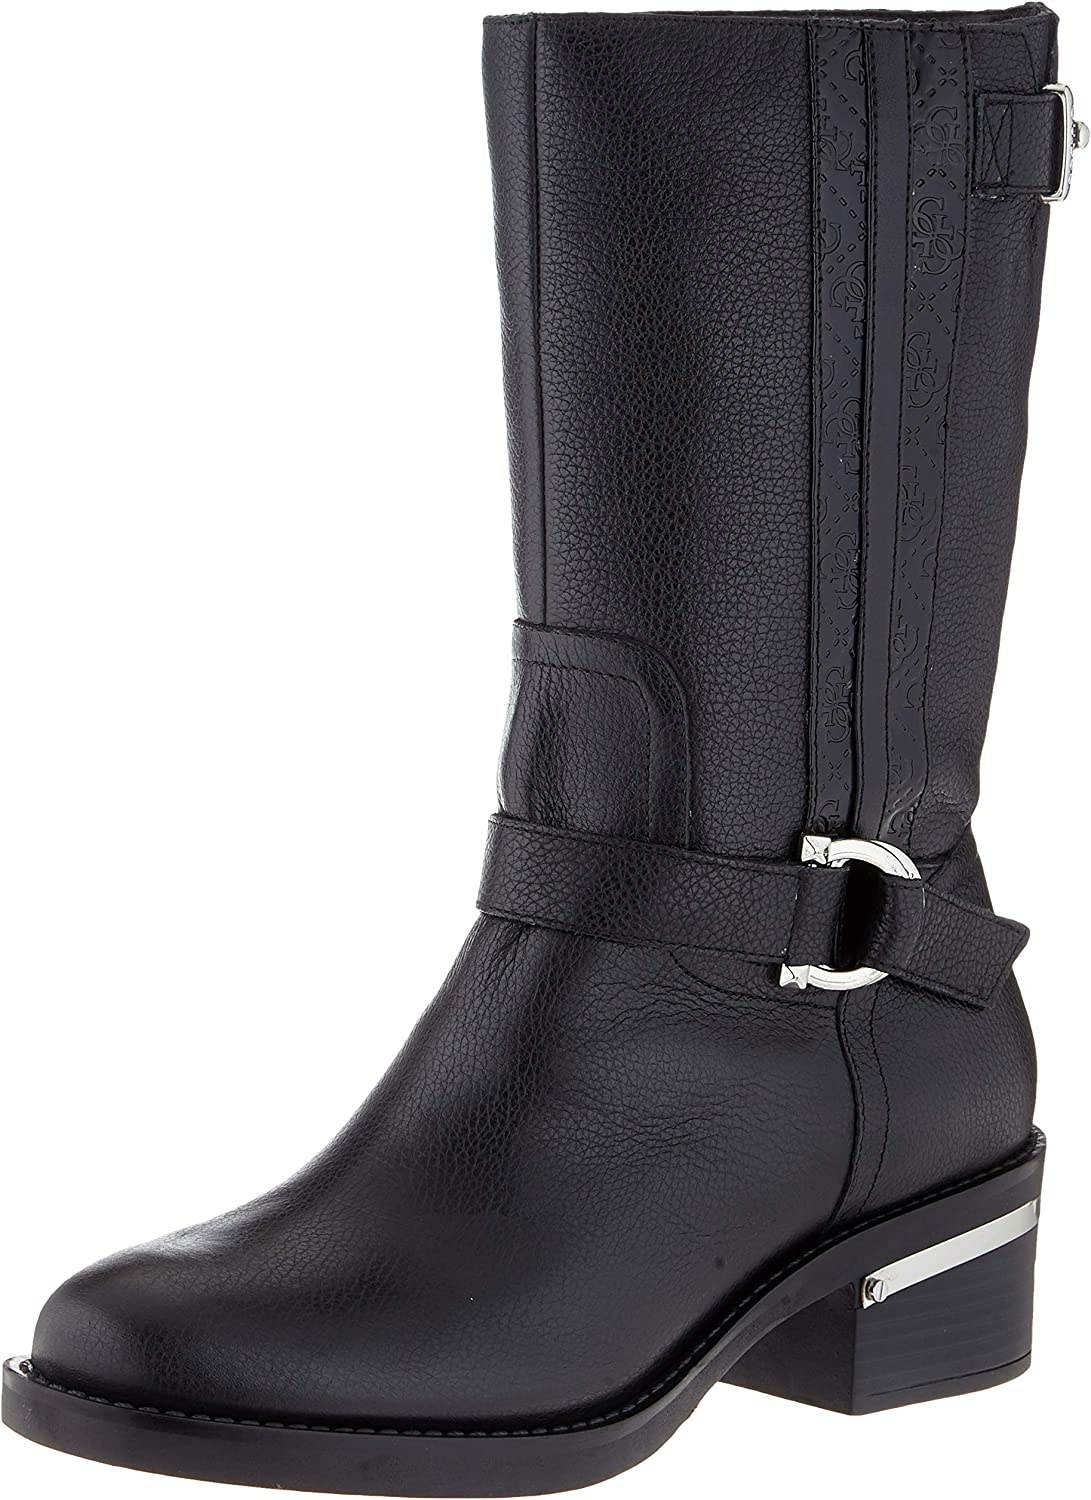 Guess Finnie/Stivale (Boot)/Leather, Botas Altas para Mujer